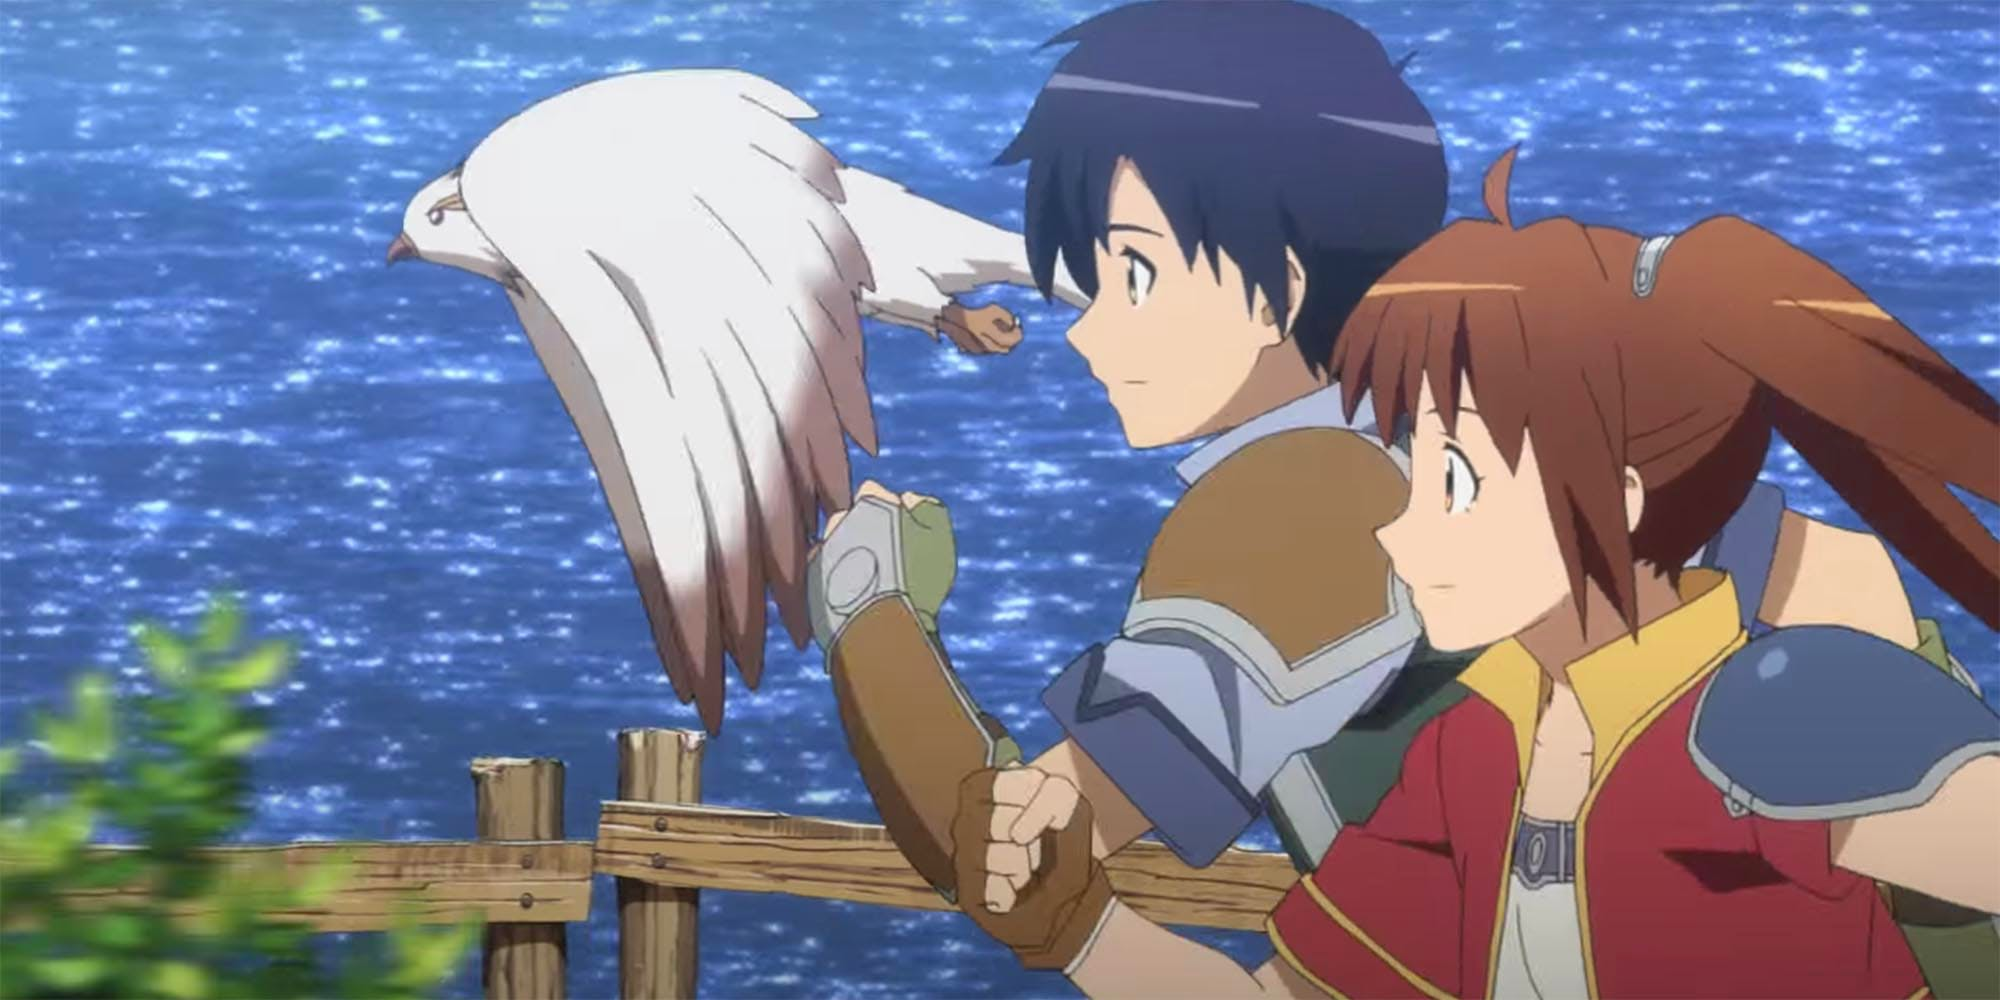 Legend of Heroes: Trails in the Sky anime movie trailer